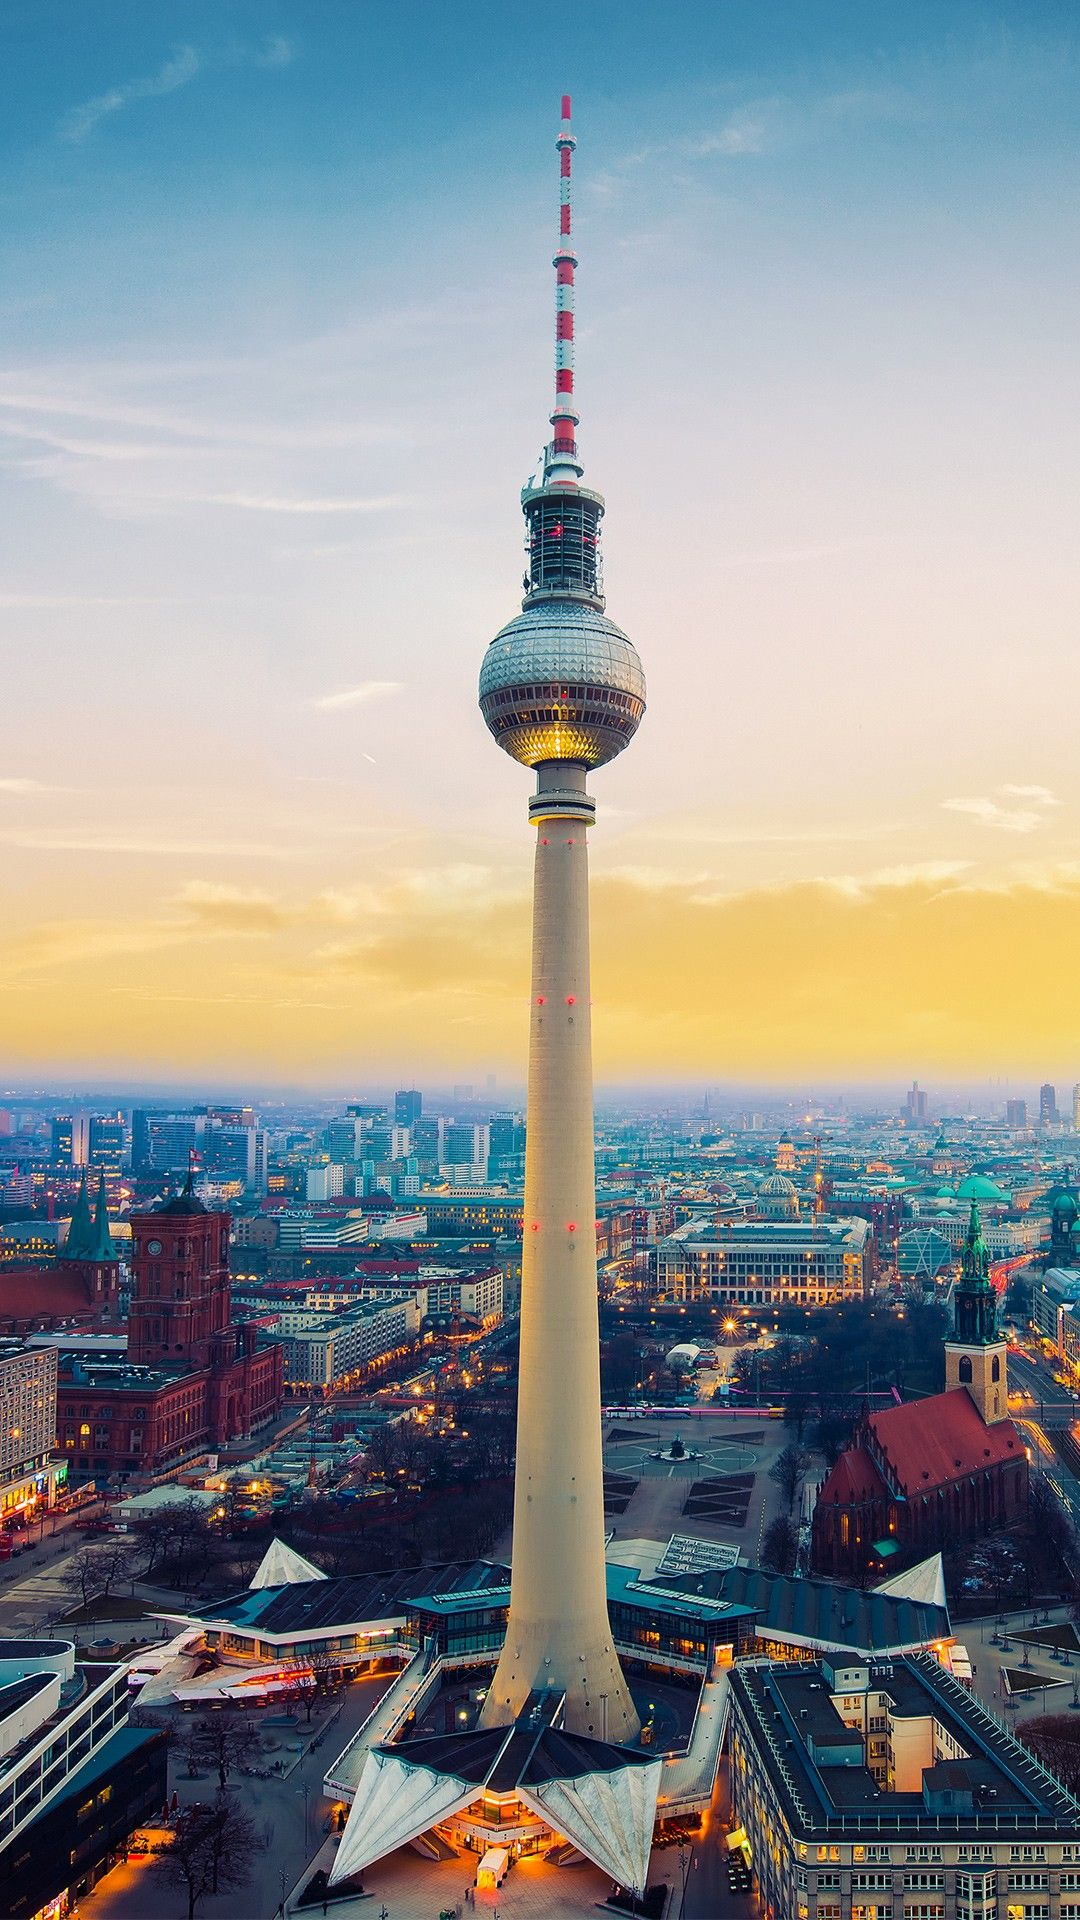 Places Fernsehturm Berlin Tv Tower Germany Wallpapers Fernsehturm Fernsehturm Berlin Europe Destinations